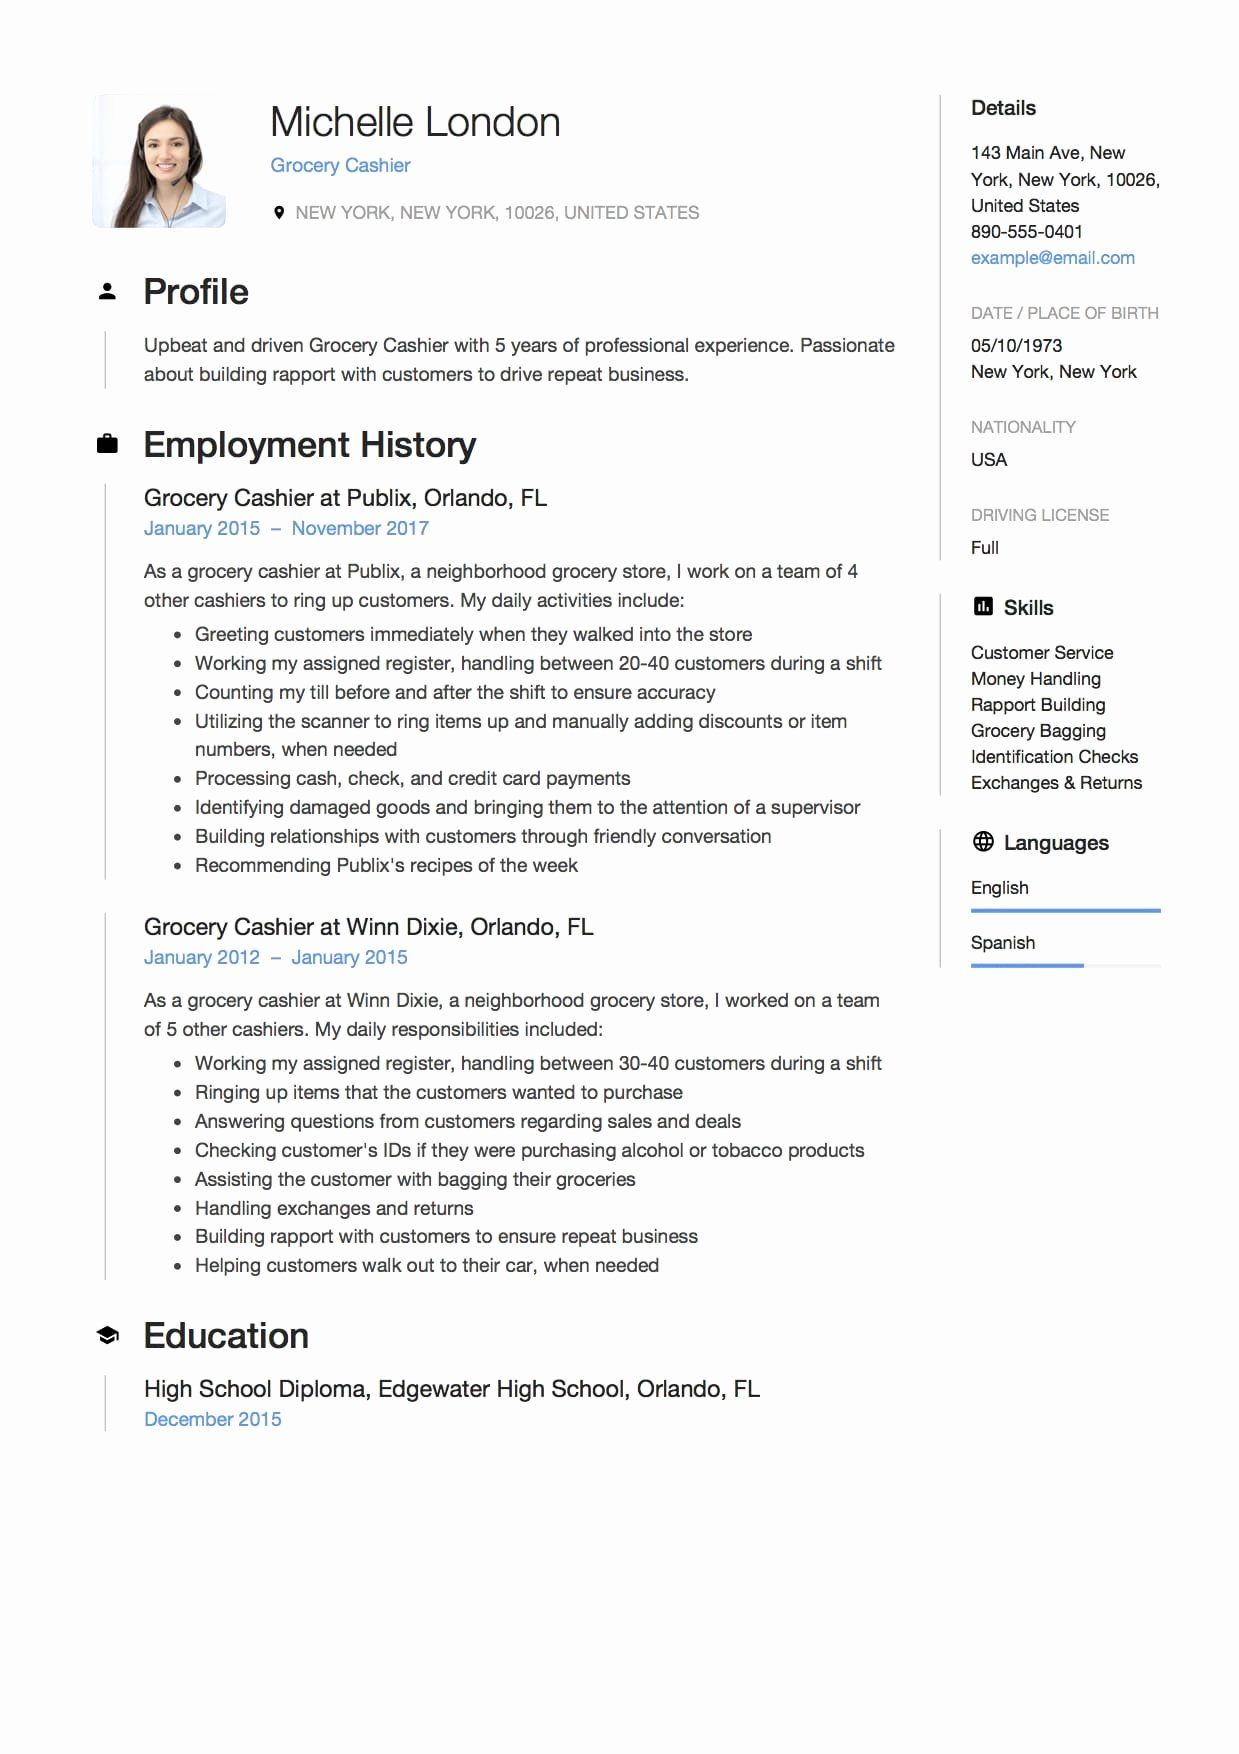 Grocery Store Cashier Resume Unique 12 Grocery Cashier Resume Sample S 2018 Free Downloads In 2021 Customer Service Resume Job Resume Samples Medical Assistant Resume